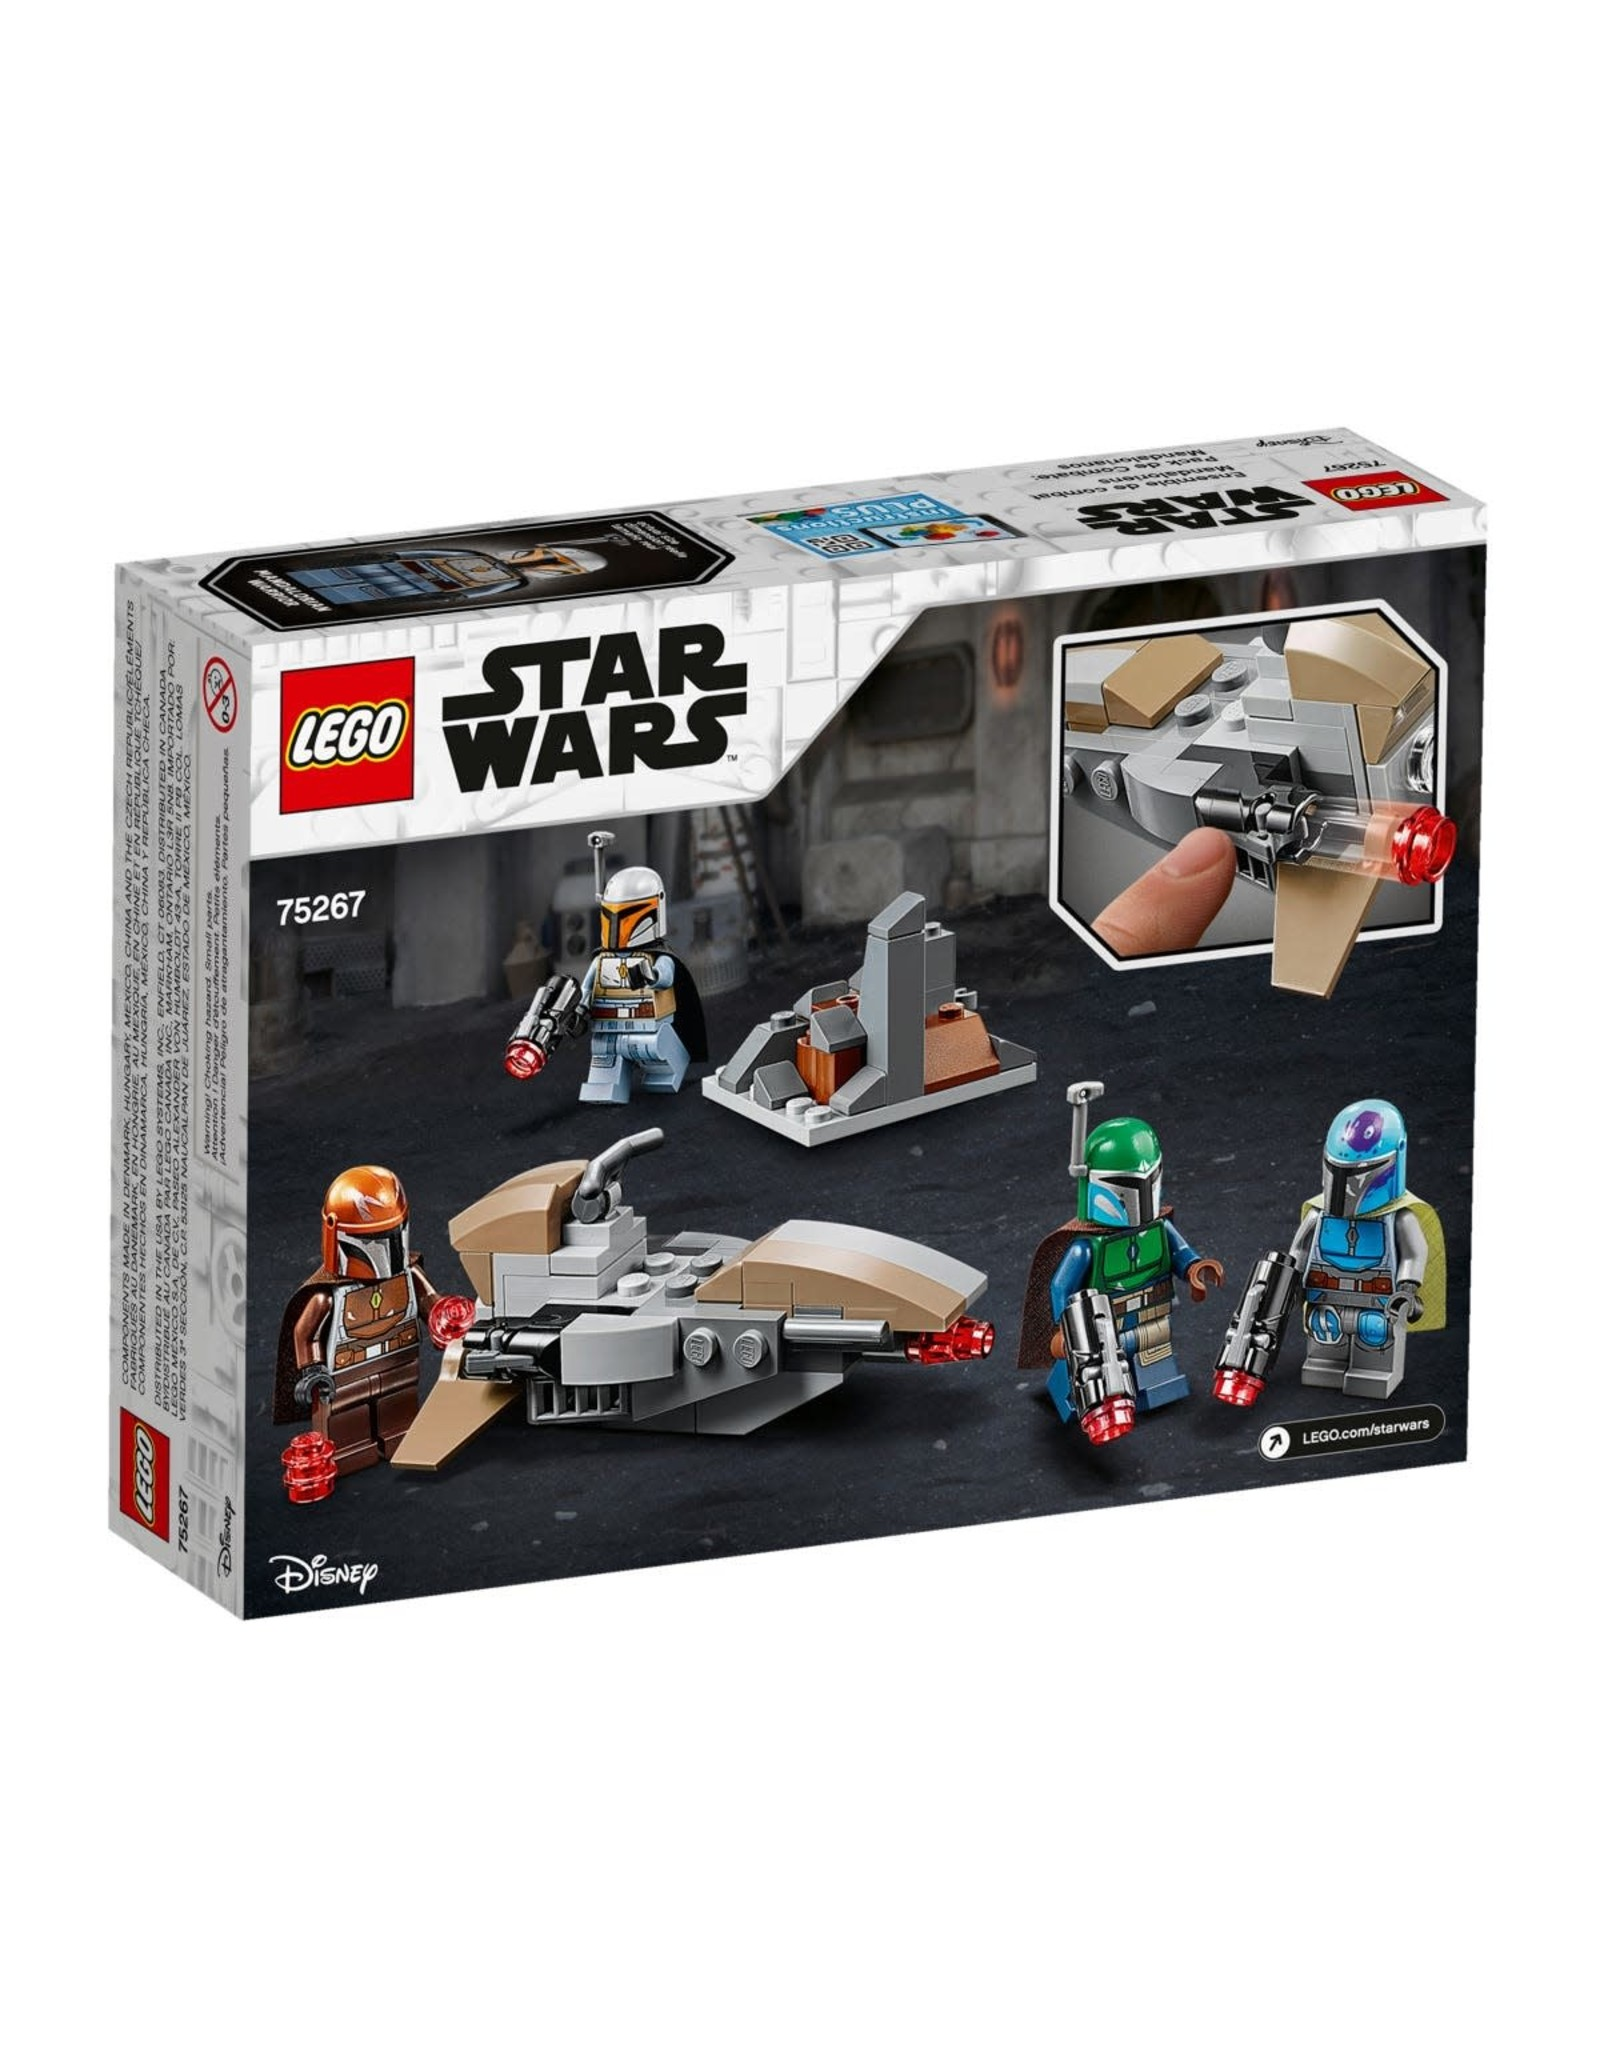 LEGO LEGO Star Wars Mandalorian Battle Pack